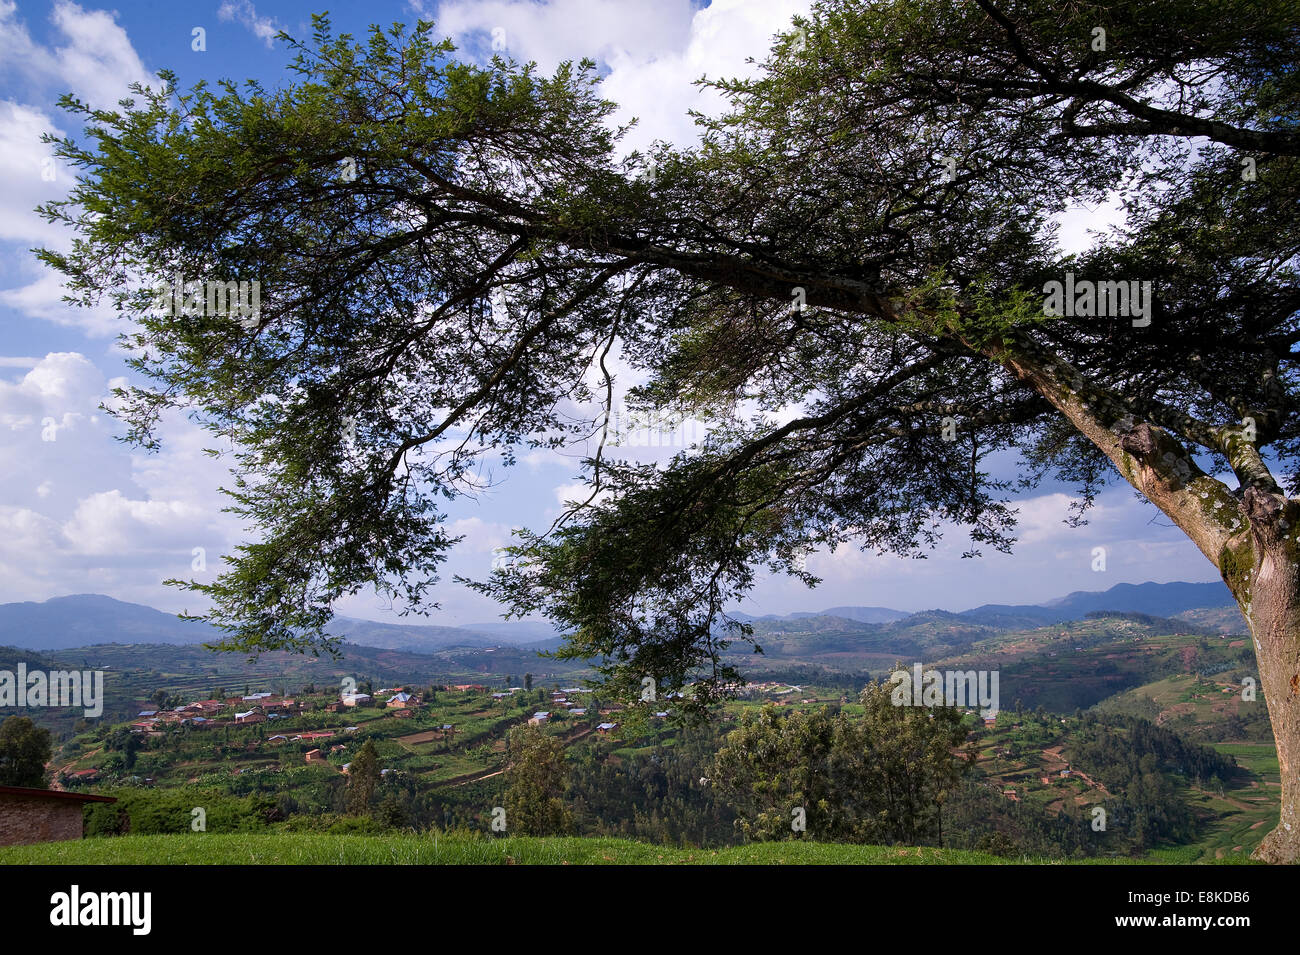 RWANDA, NYAMAGABE: The area here is very hilly, green and rural. Stock Photo